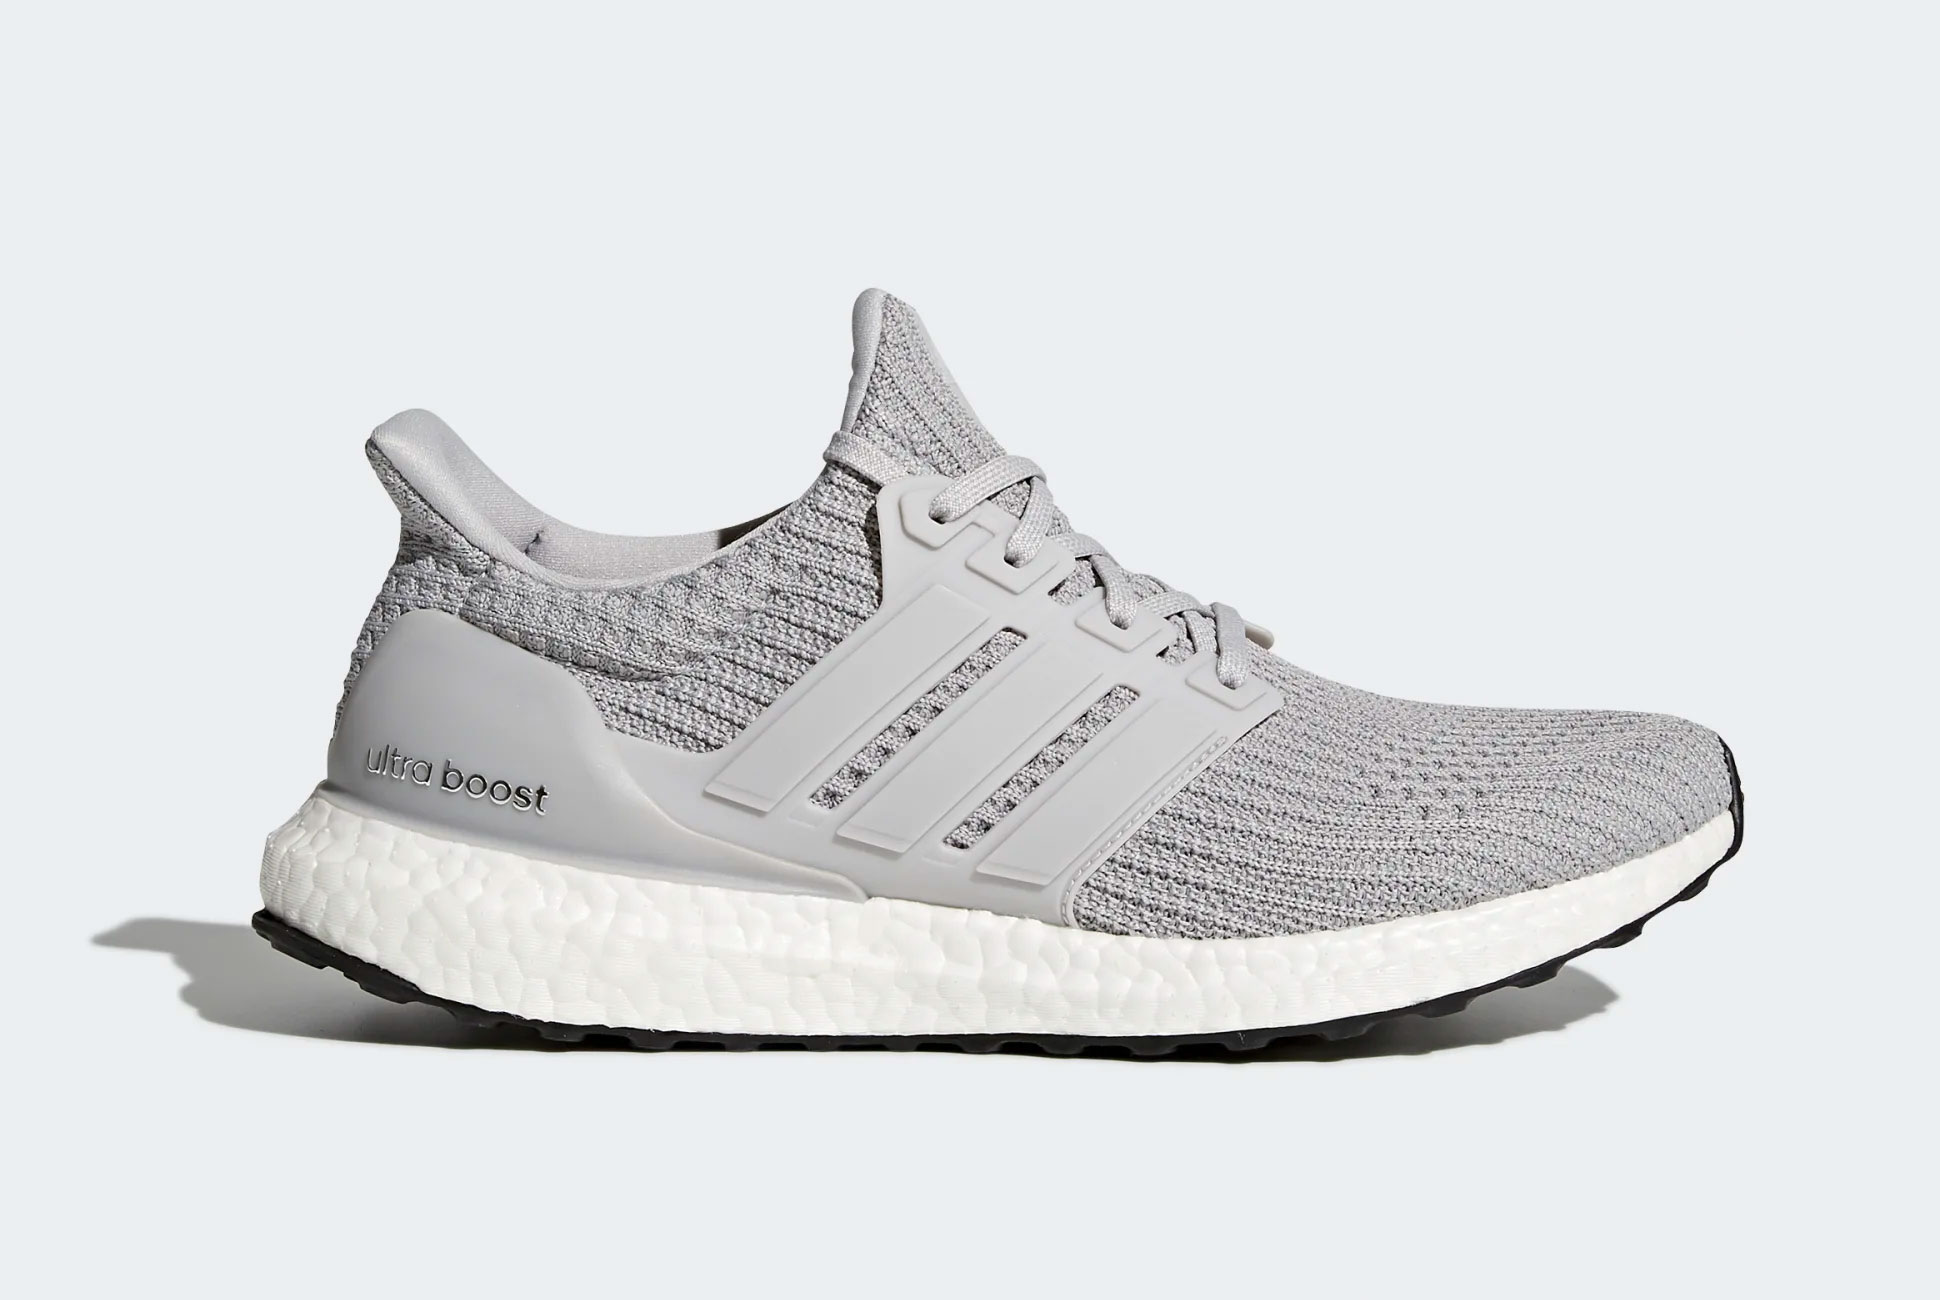 Fragante ganso amenaza  Today's Best Deals: 30% Off Adidas Ultraboost Sneakers, $30 Off ...